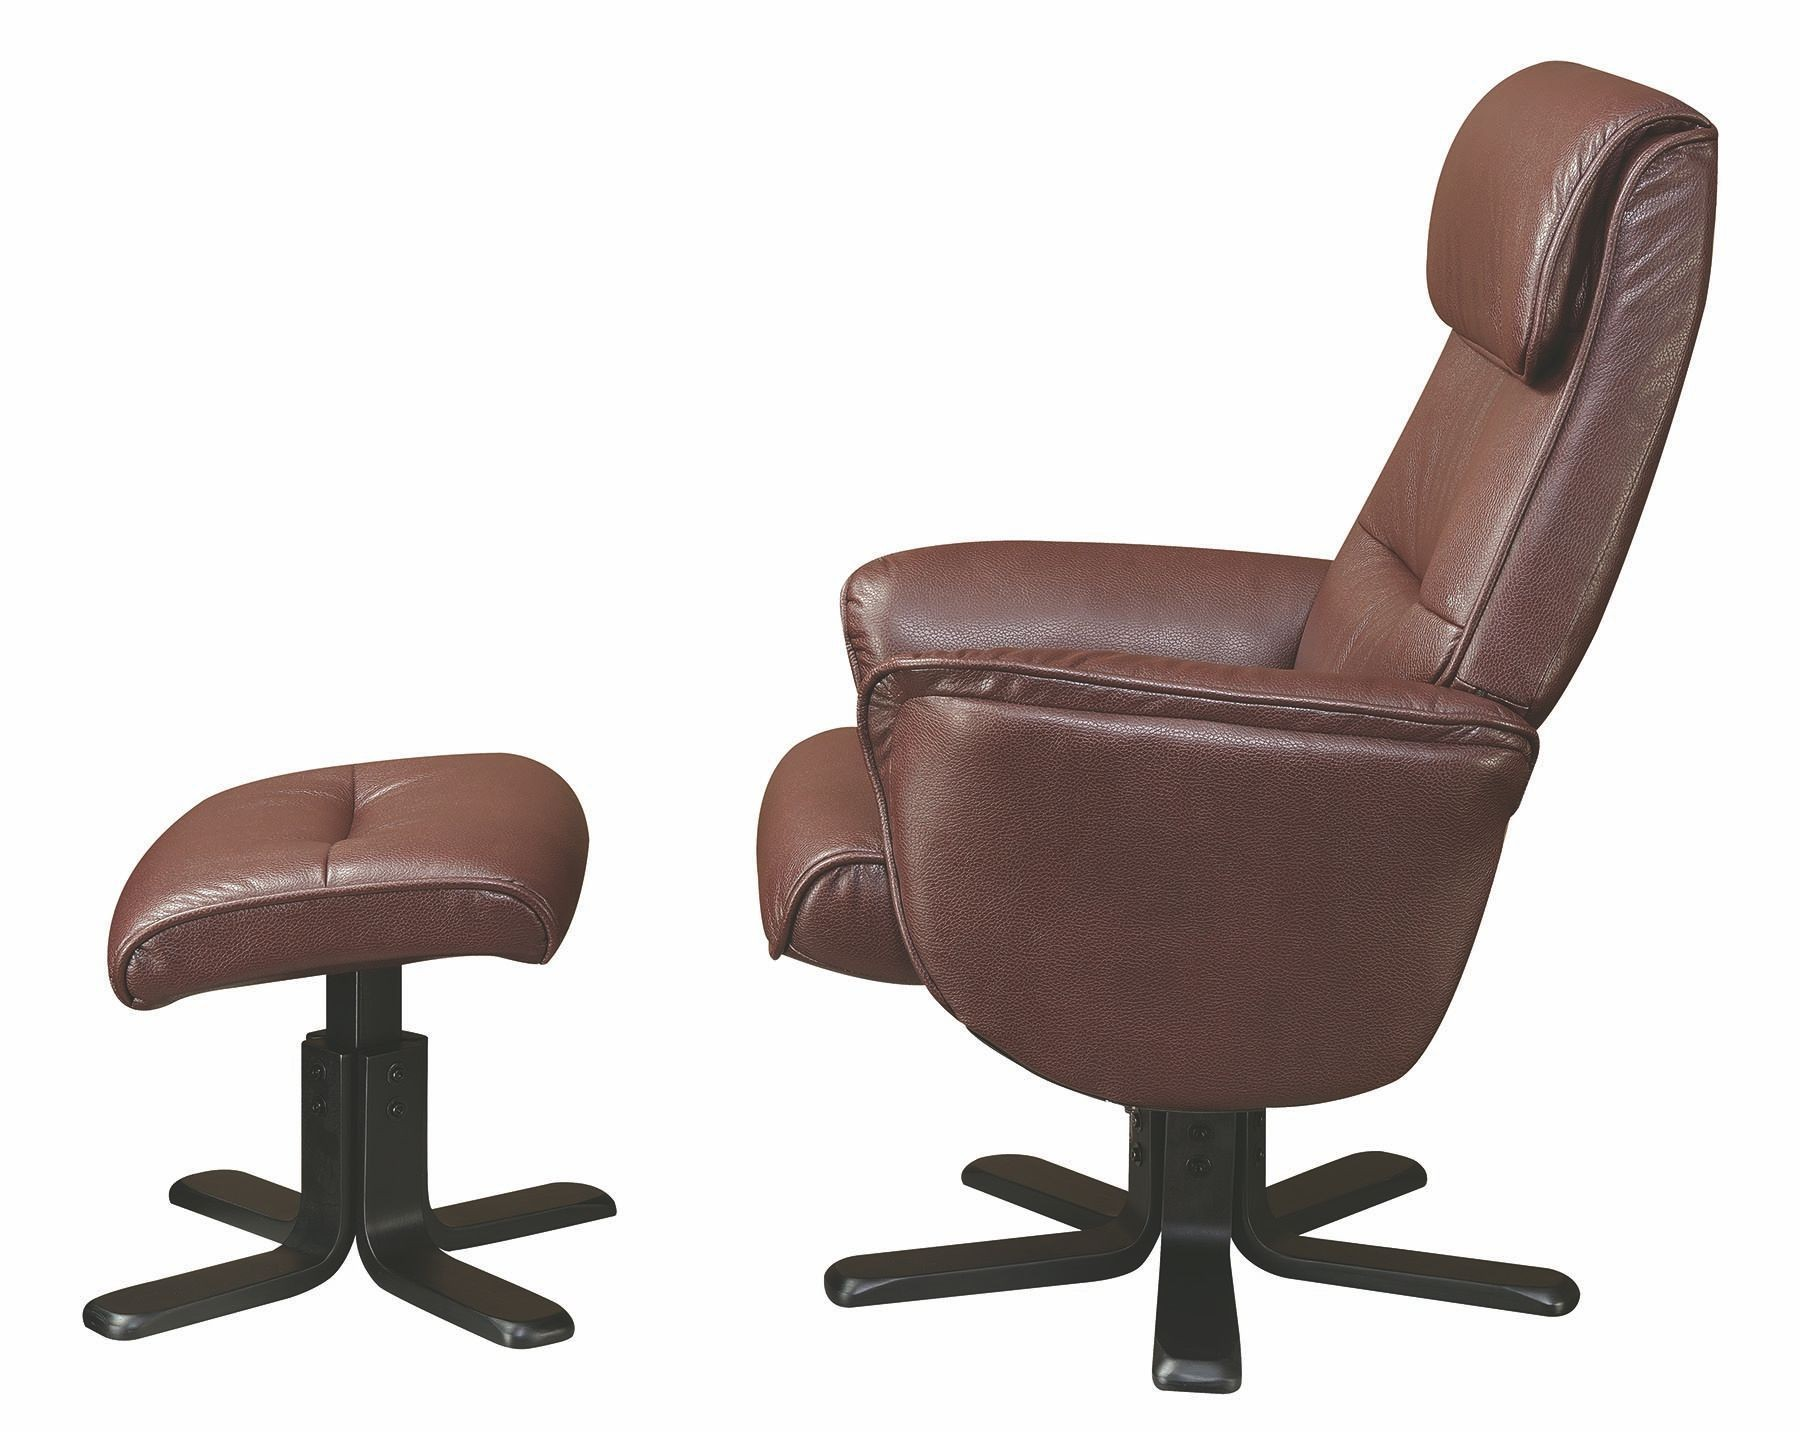 Brown glider recliner with ottoman 600057 coaster furniture for Chair with ottoman